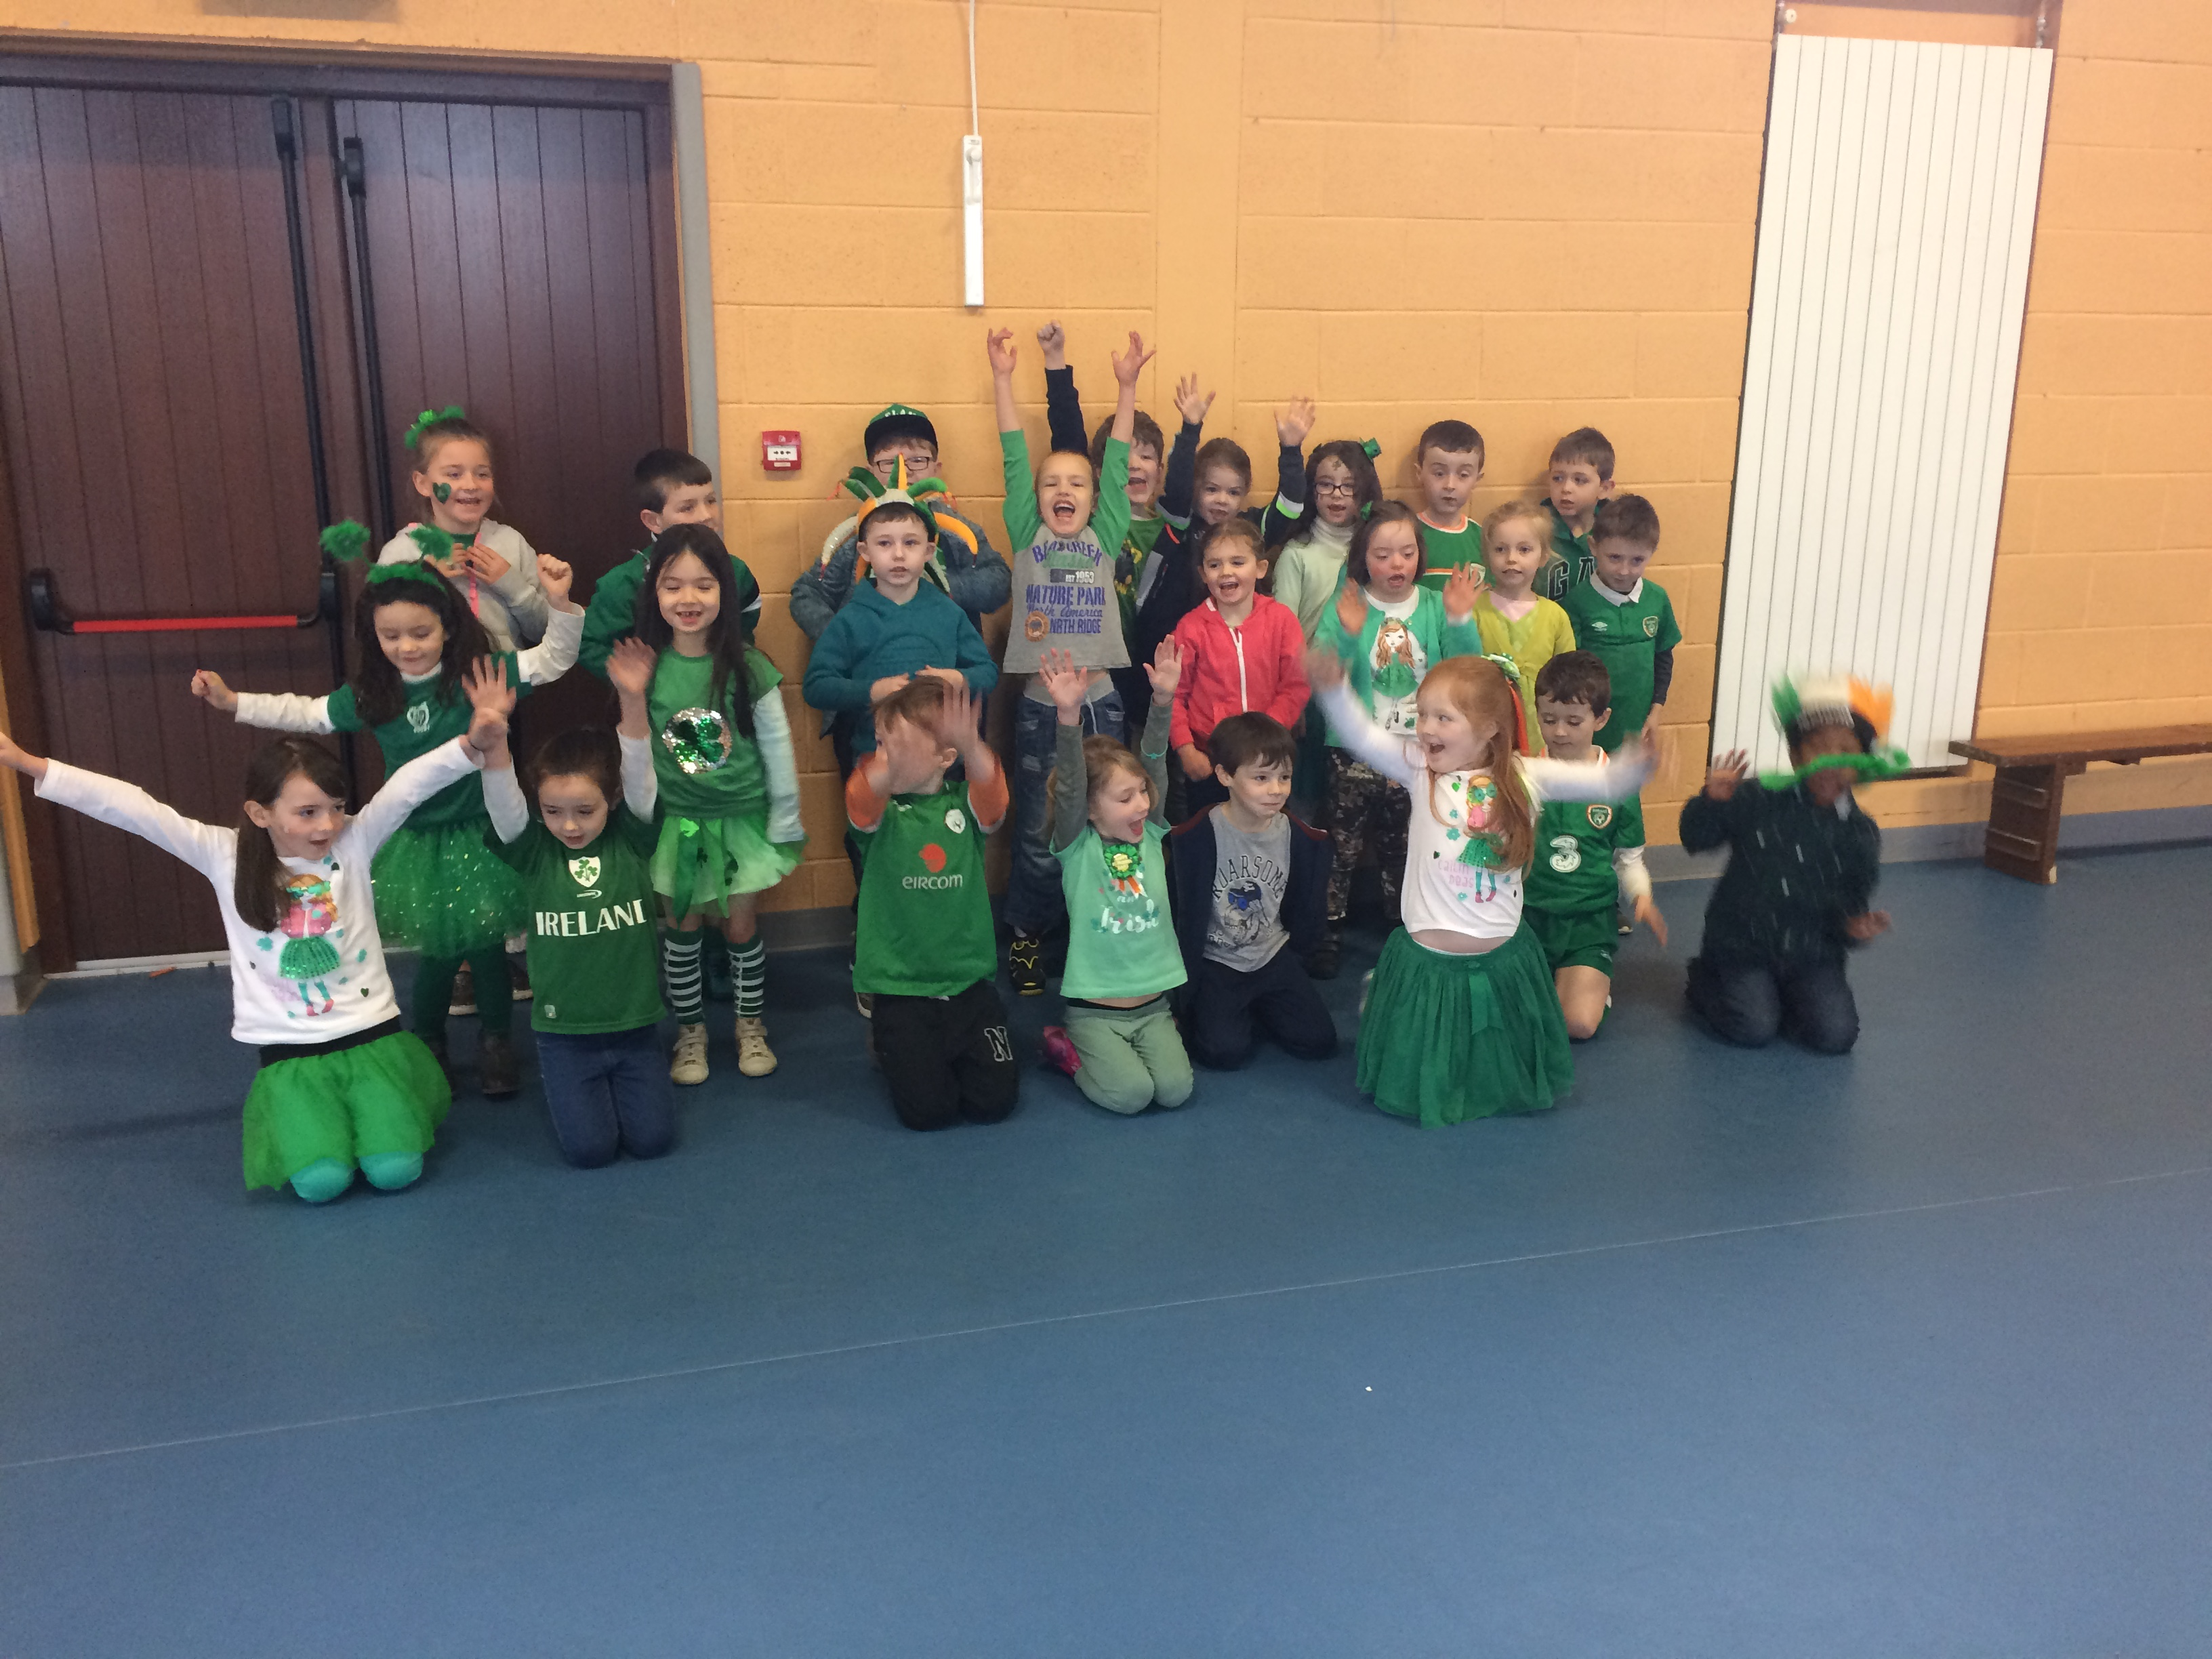 Our class preformed at assembly for St. Patrick's Day.